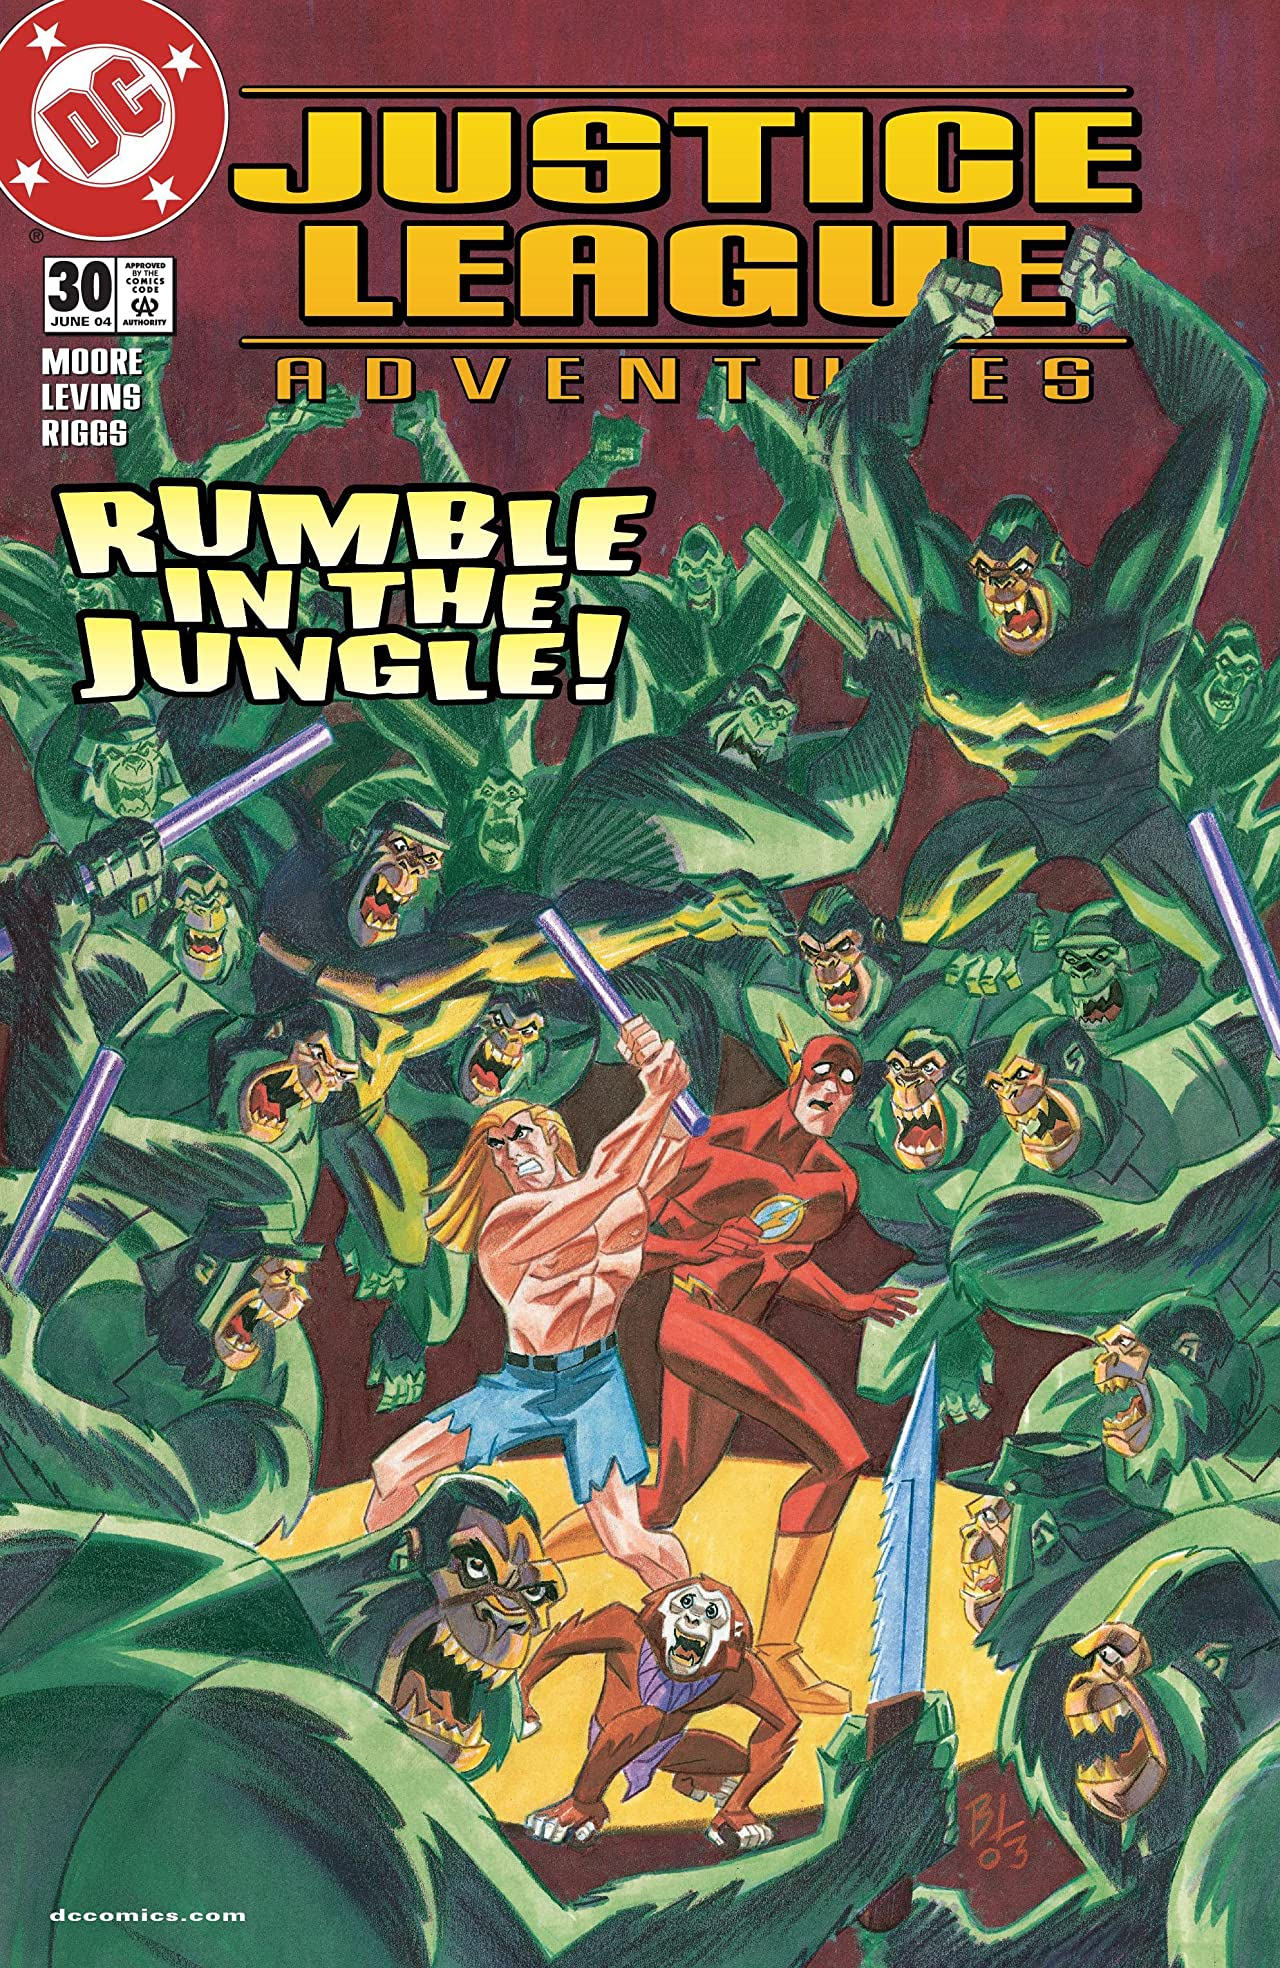 Justice League Adventures (2001-2004) #30